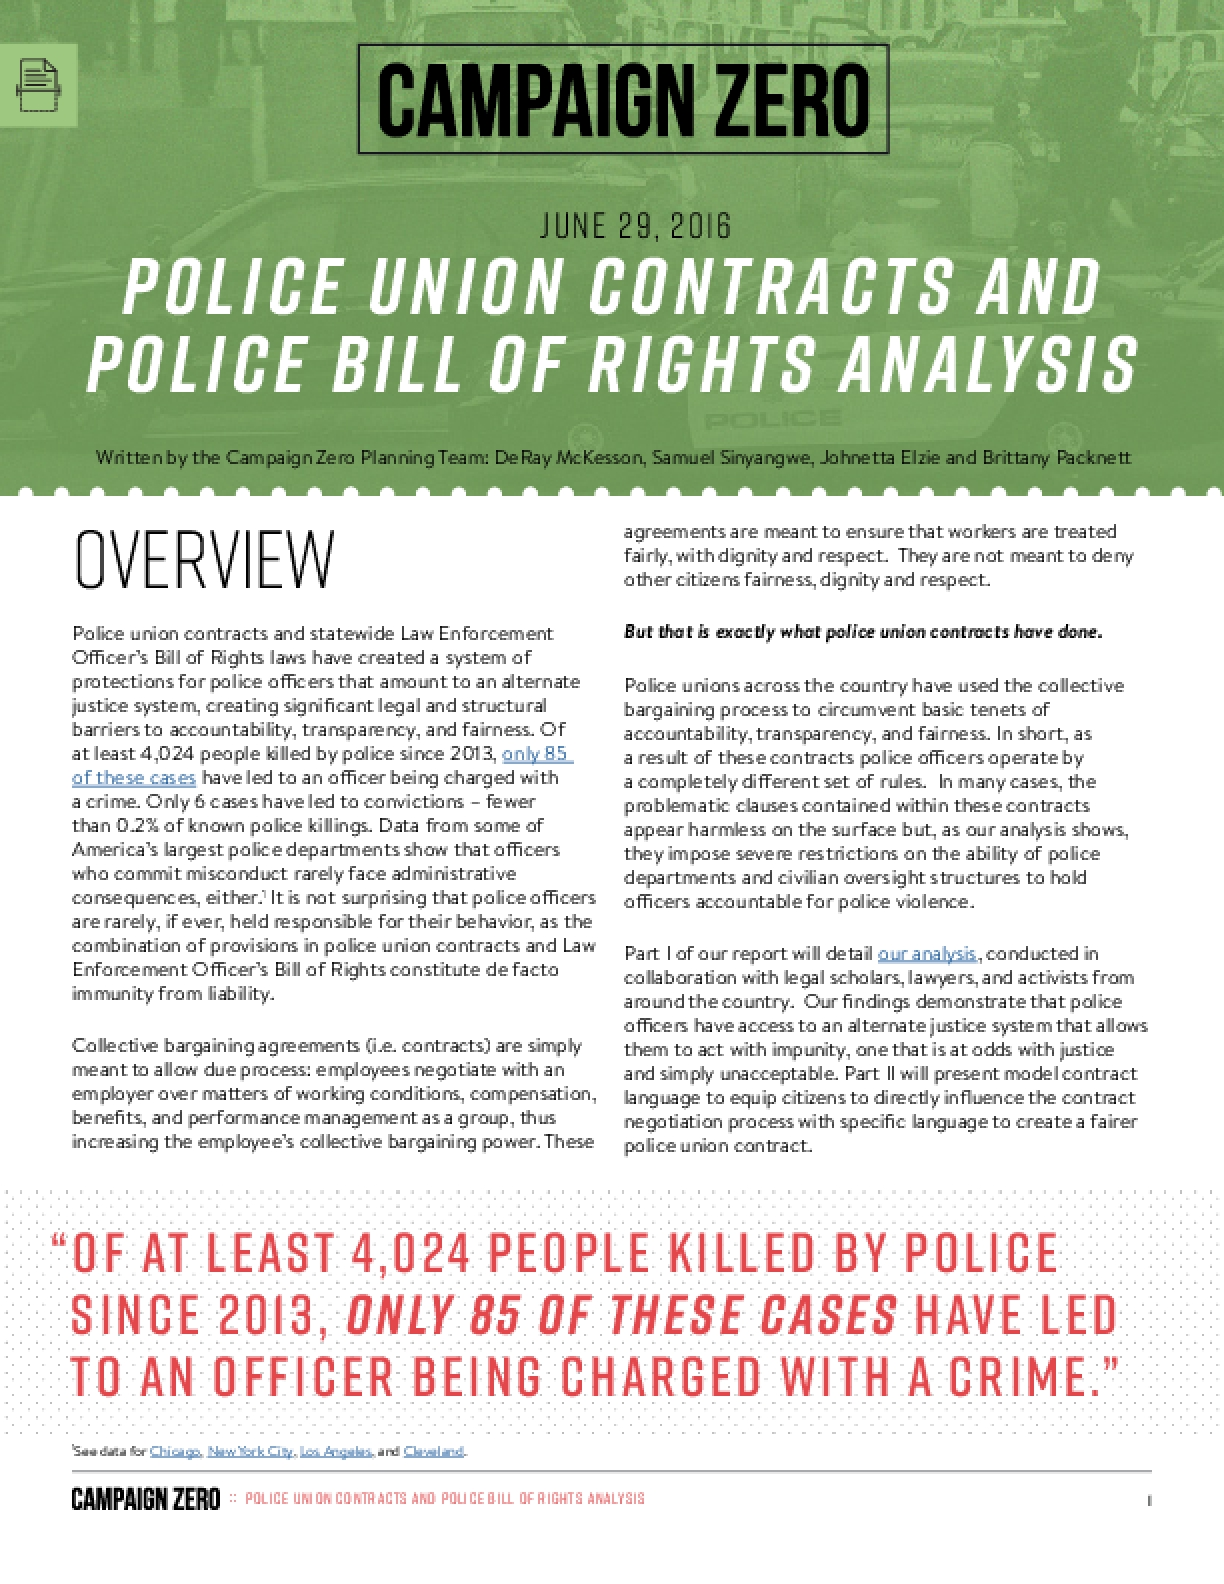 Police Union Contracts and Police Bill of Rights Analysis